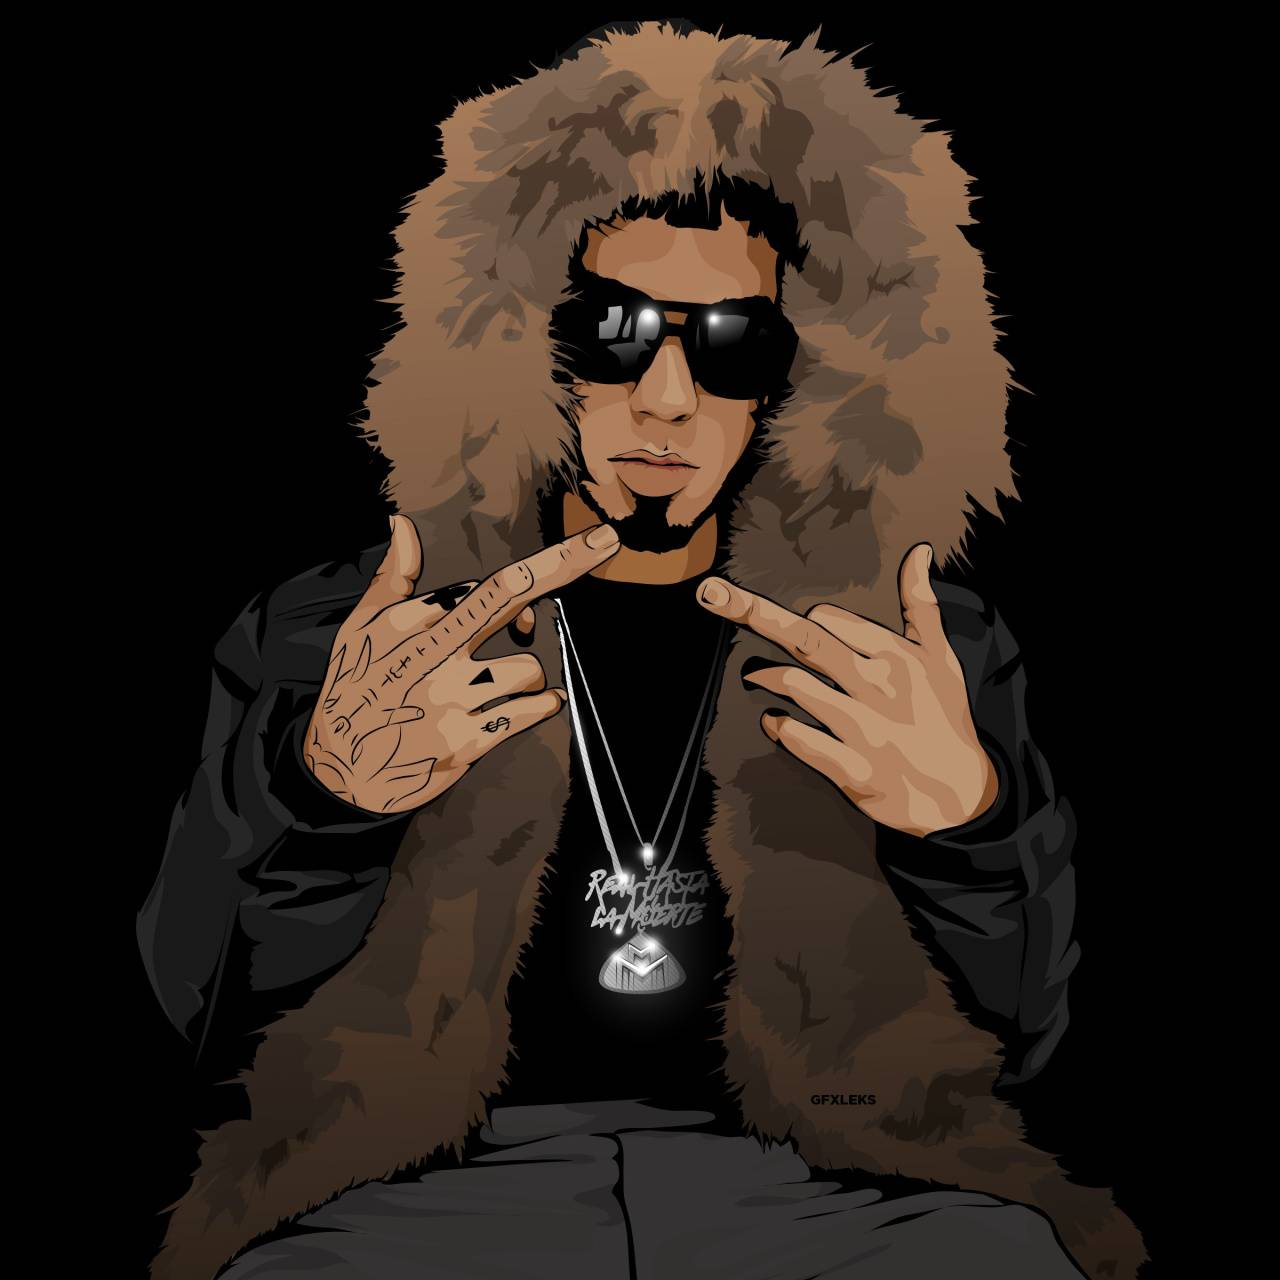 Anuel Aa Wallpaper By Kiddjeff 44 Free On Zedge